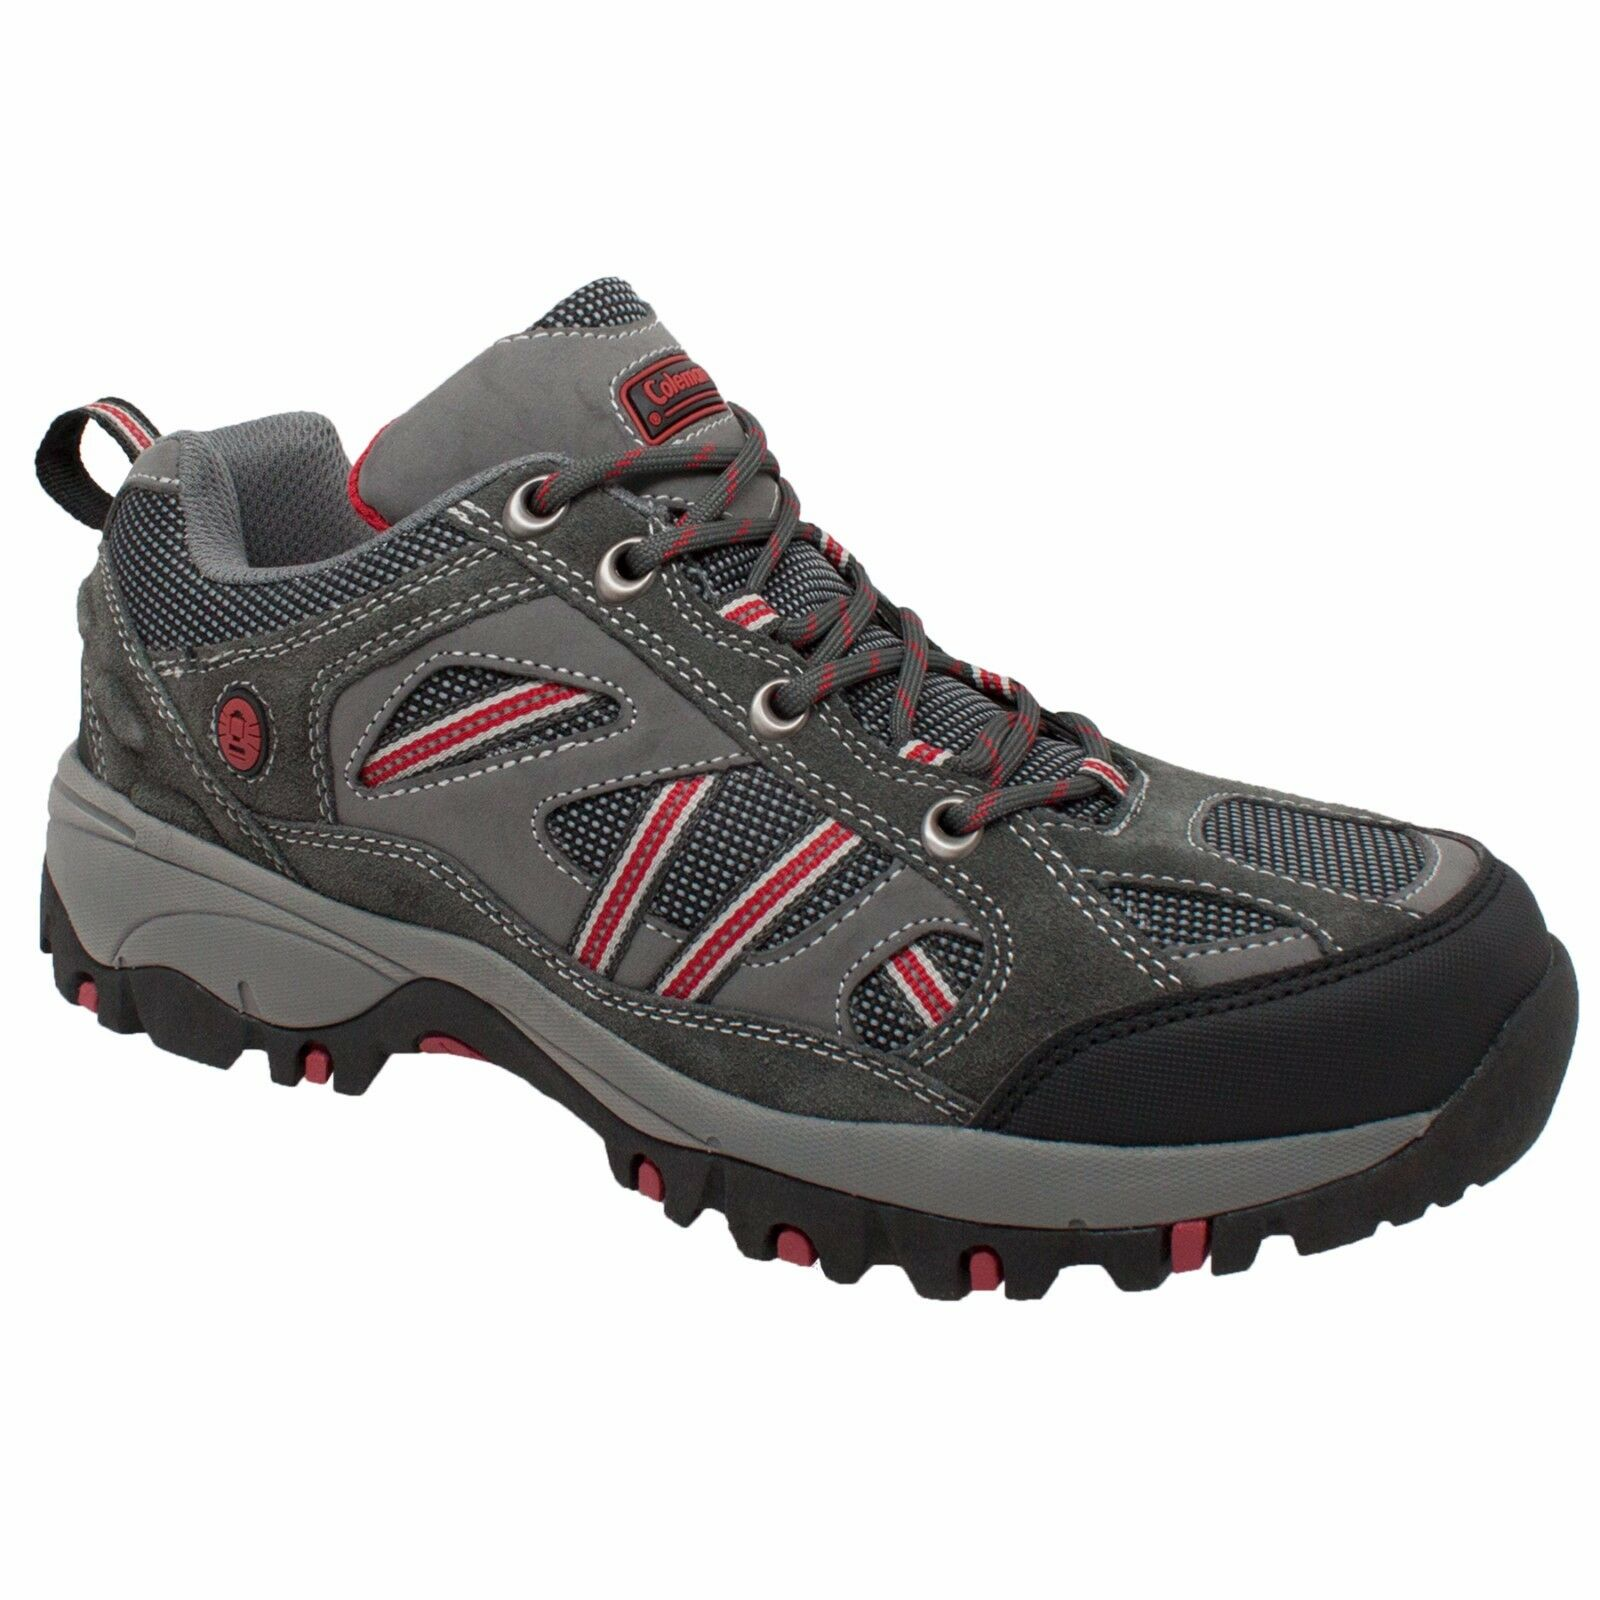 sale retailer e7c1e 91db0 Utah Grey, Coleman Men Hiker Suede Leather Upper Soft Toe shoes